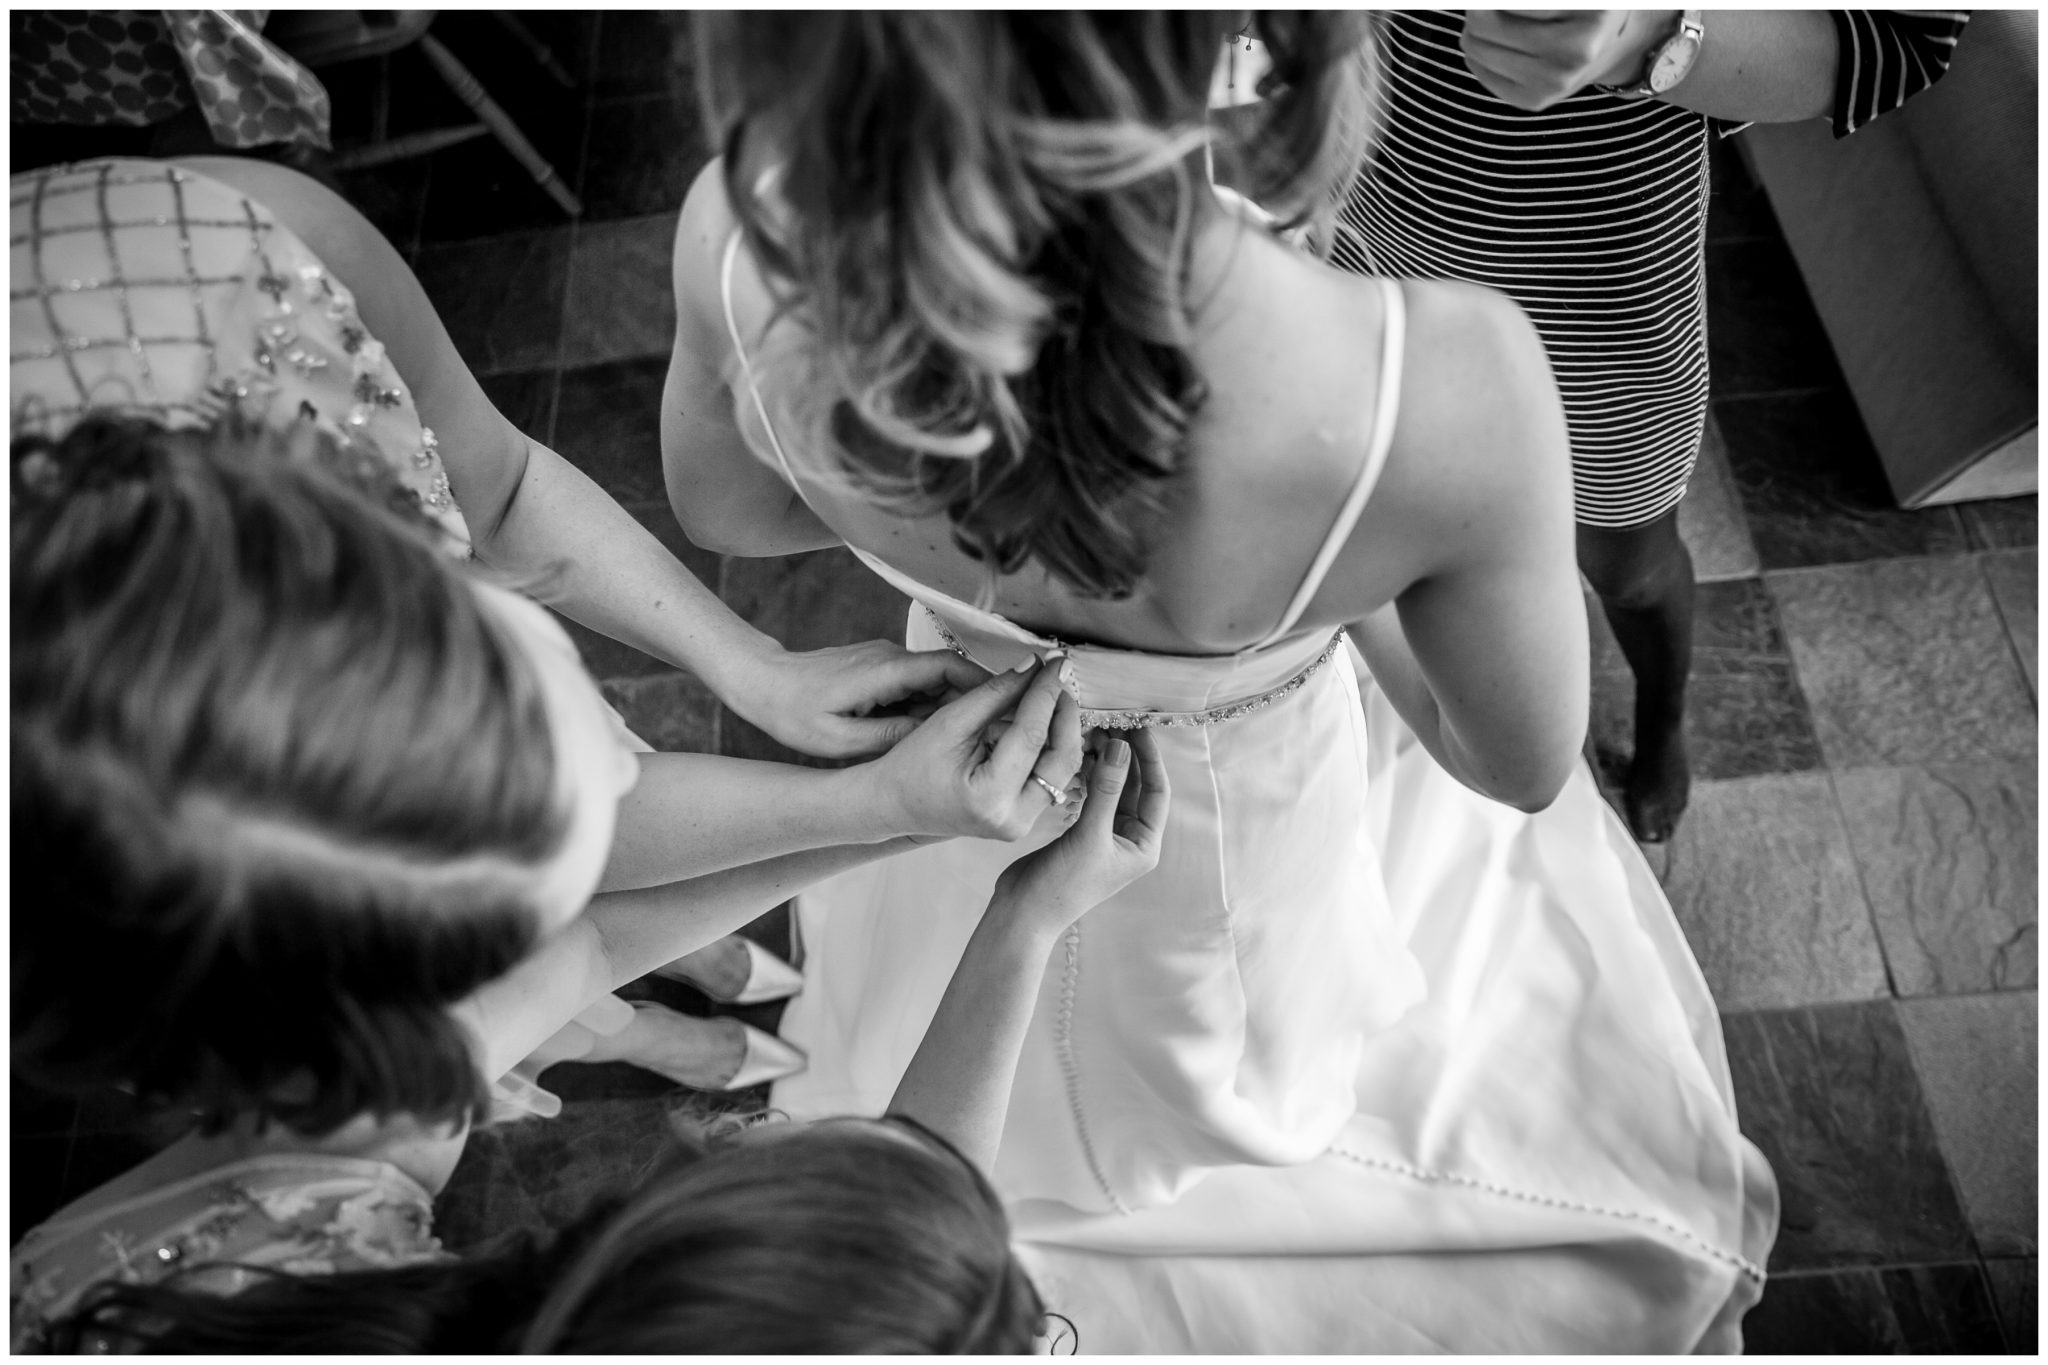 Black and white image of bridesmaids buttoning up bride's dress